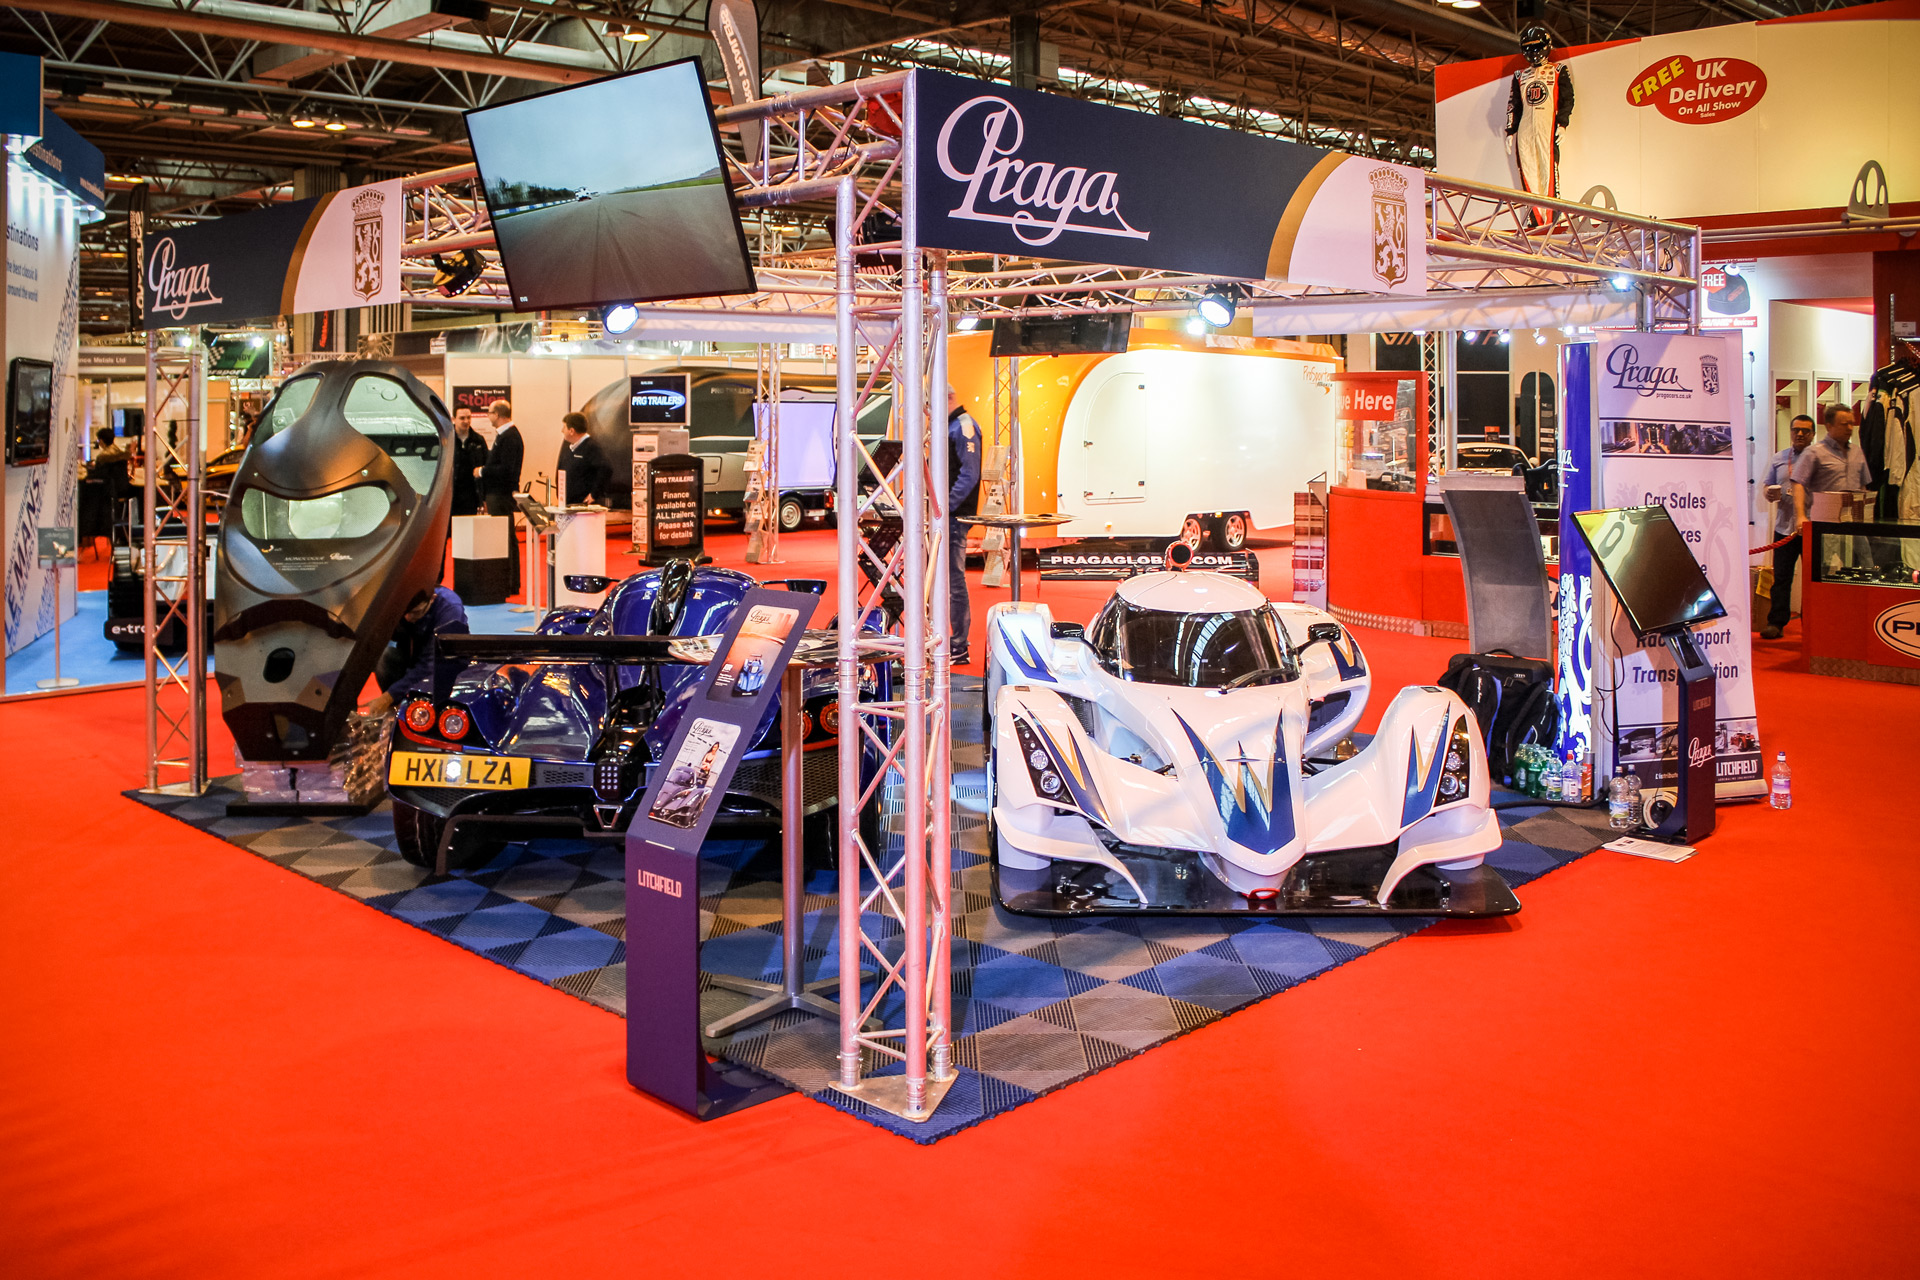 Praga Cars gathered crowds at Autosport show